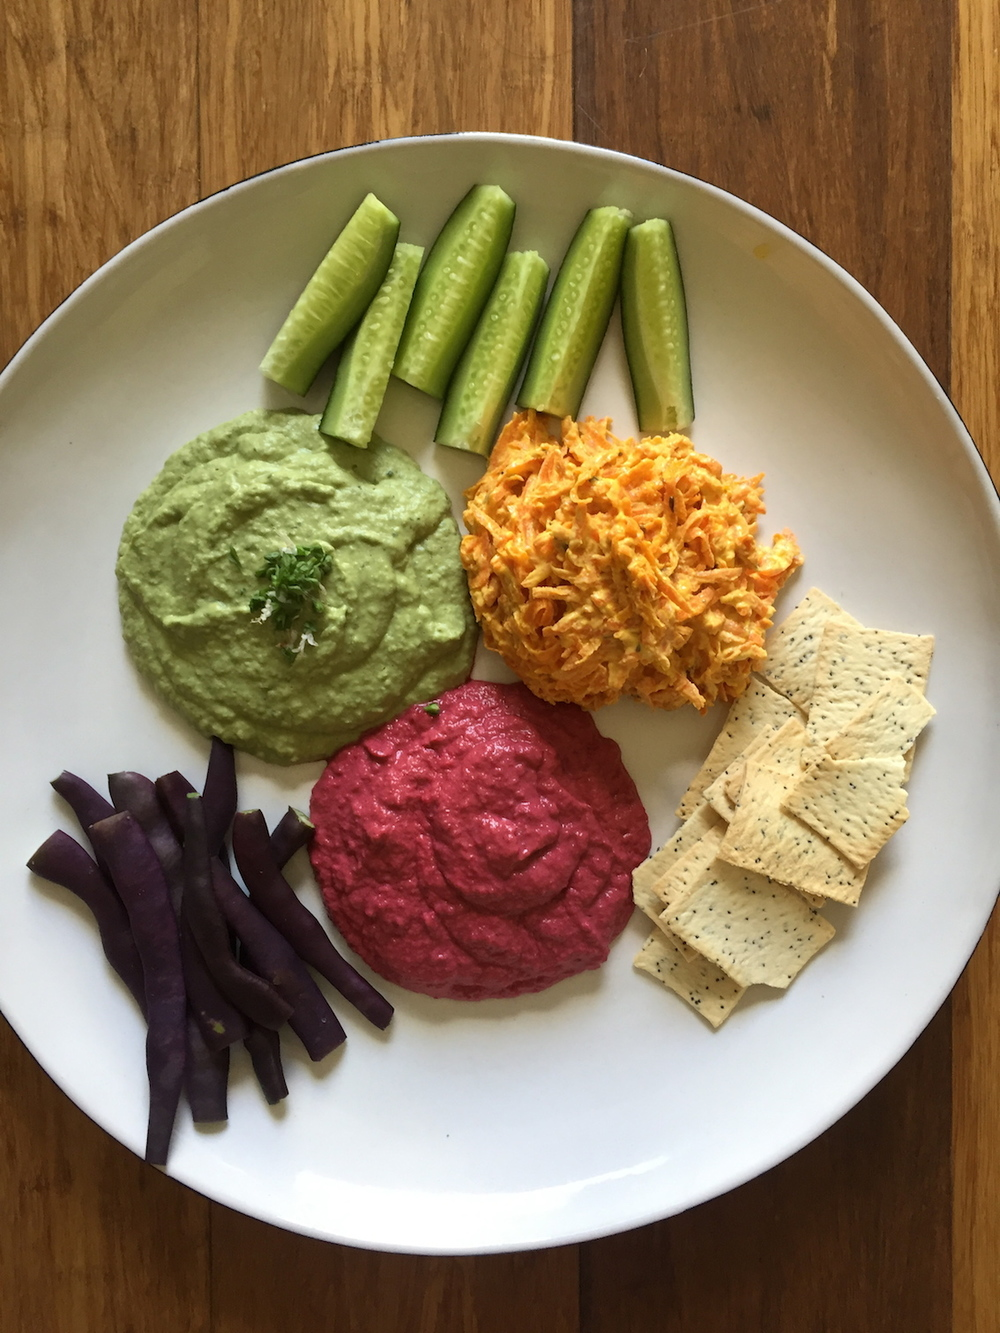 Delicious served with veggies and crackers, or add to your favourite sandwich or salad.